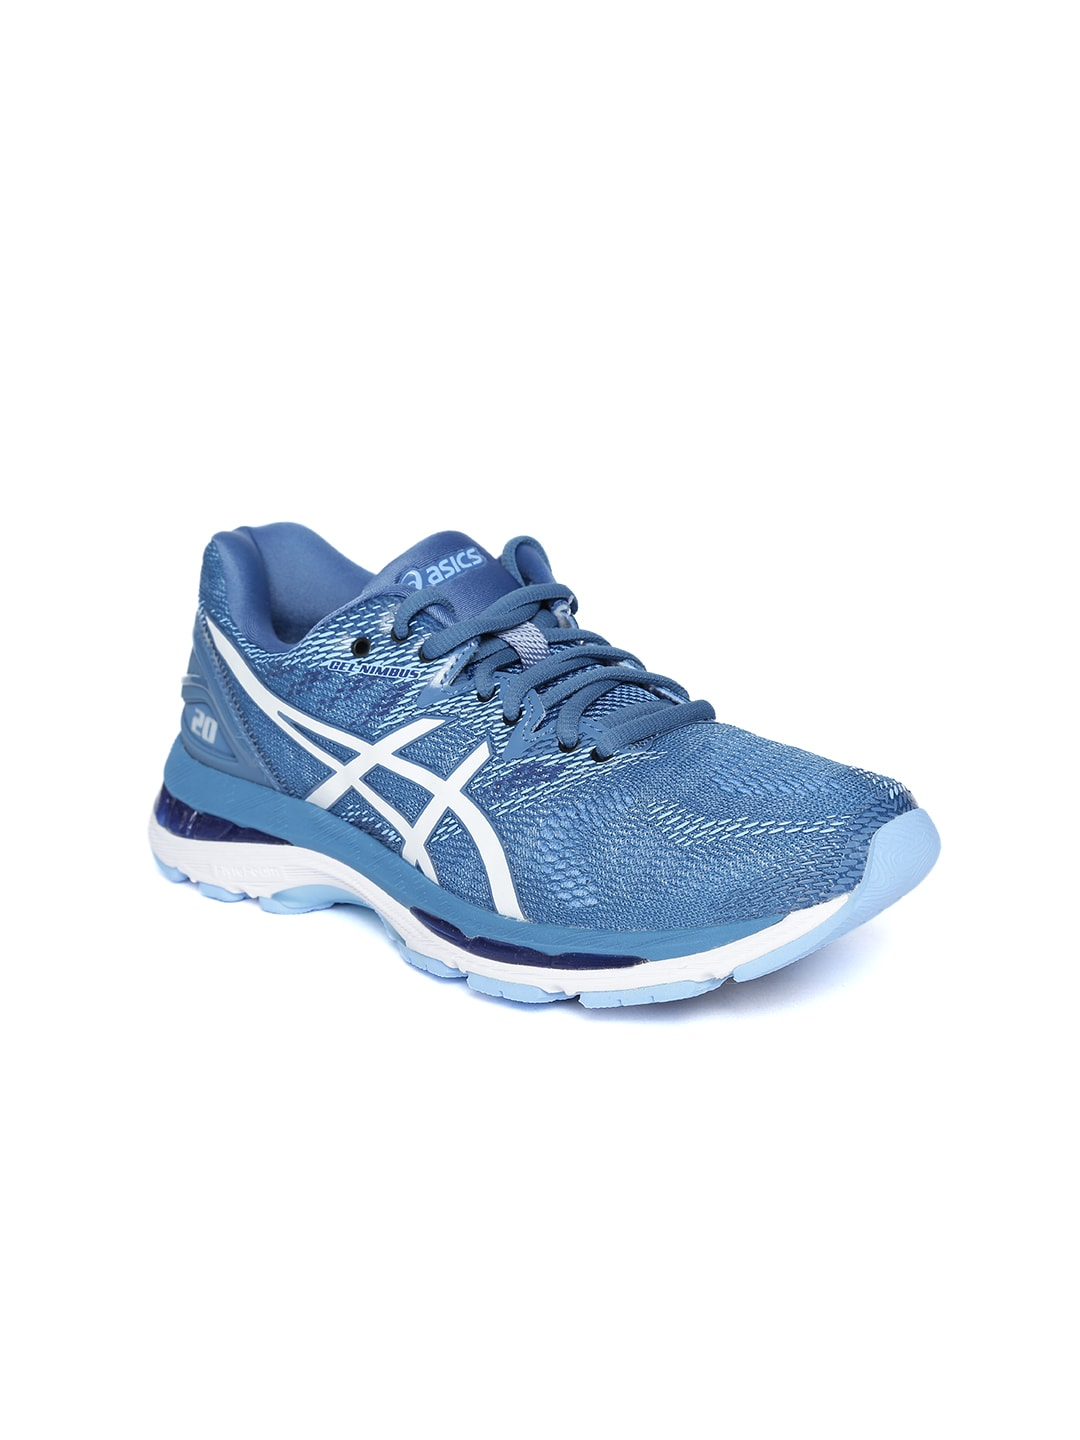 e9852fc8dba8 Women s Asics Shoes - Buy Asics Shoes for Women Online in India